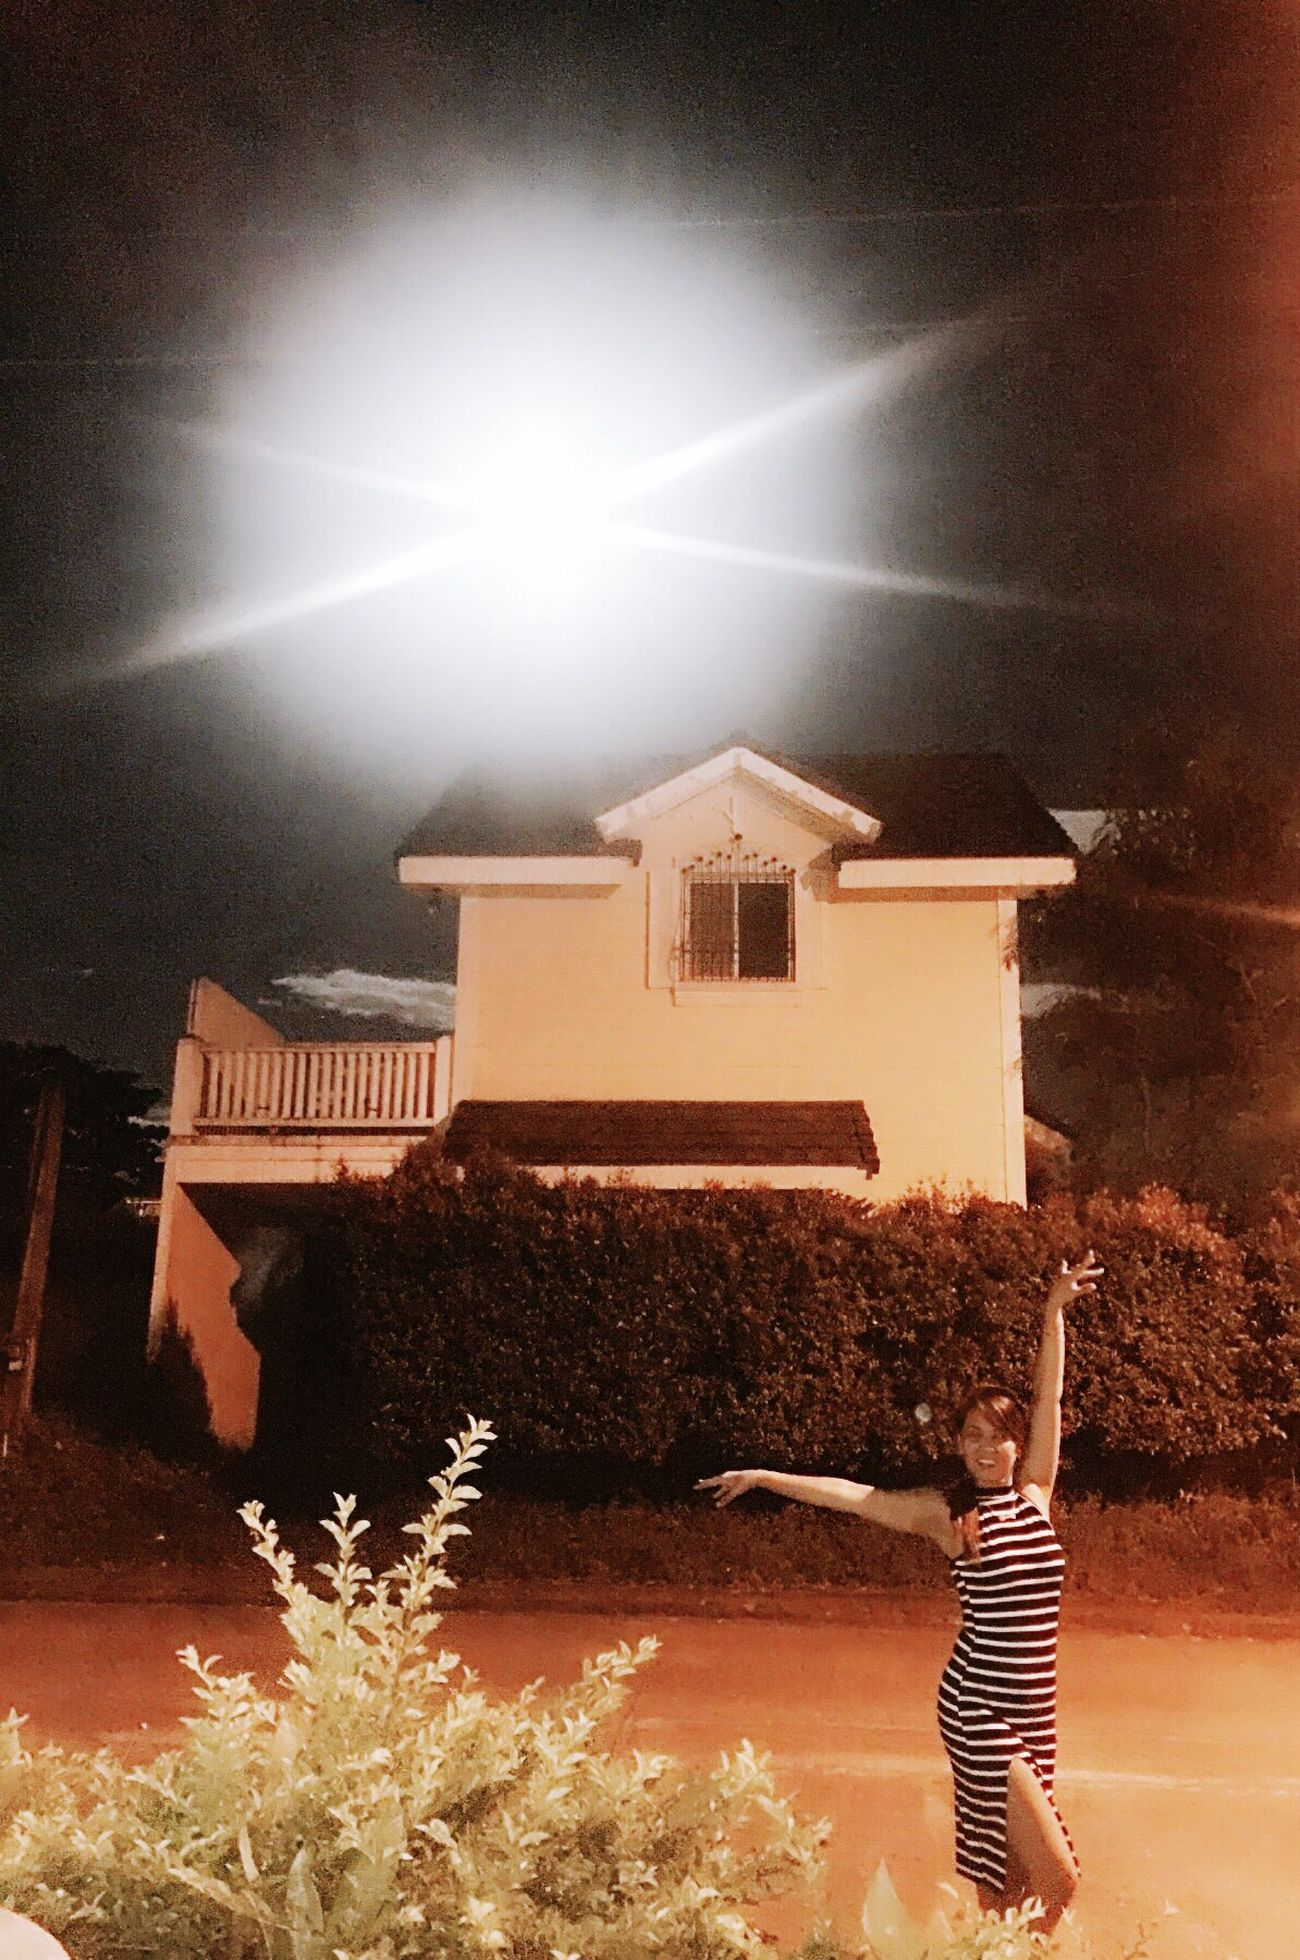 This how big and bright he is... Rare moment with Super moon... Sambapose_everywhere